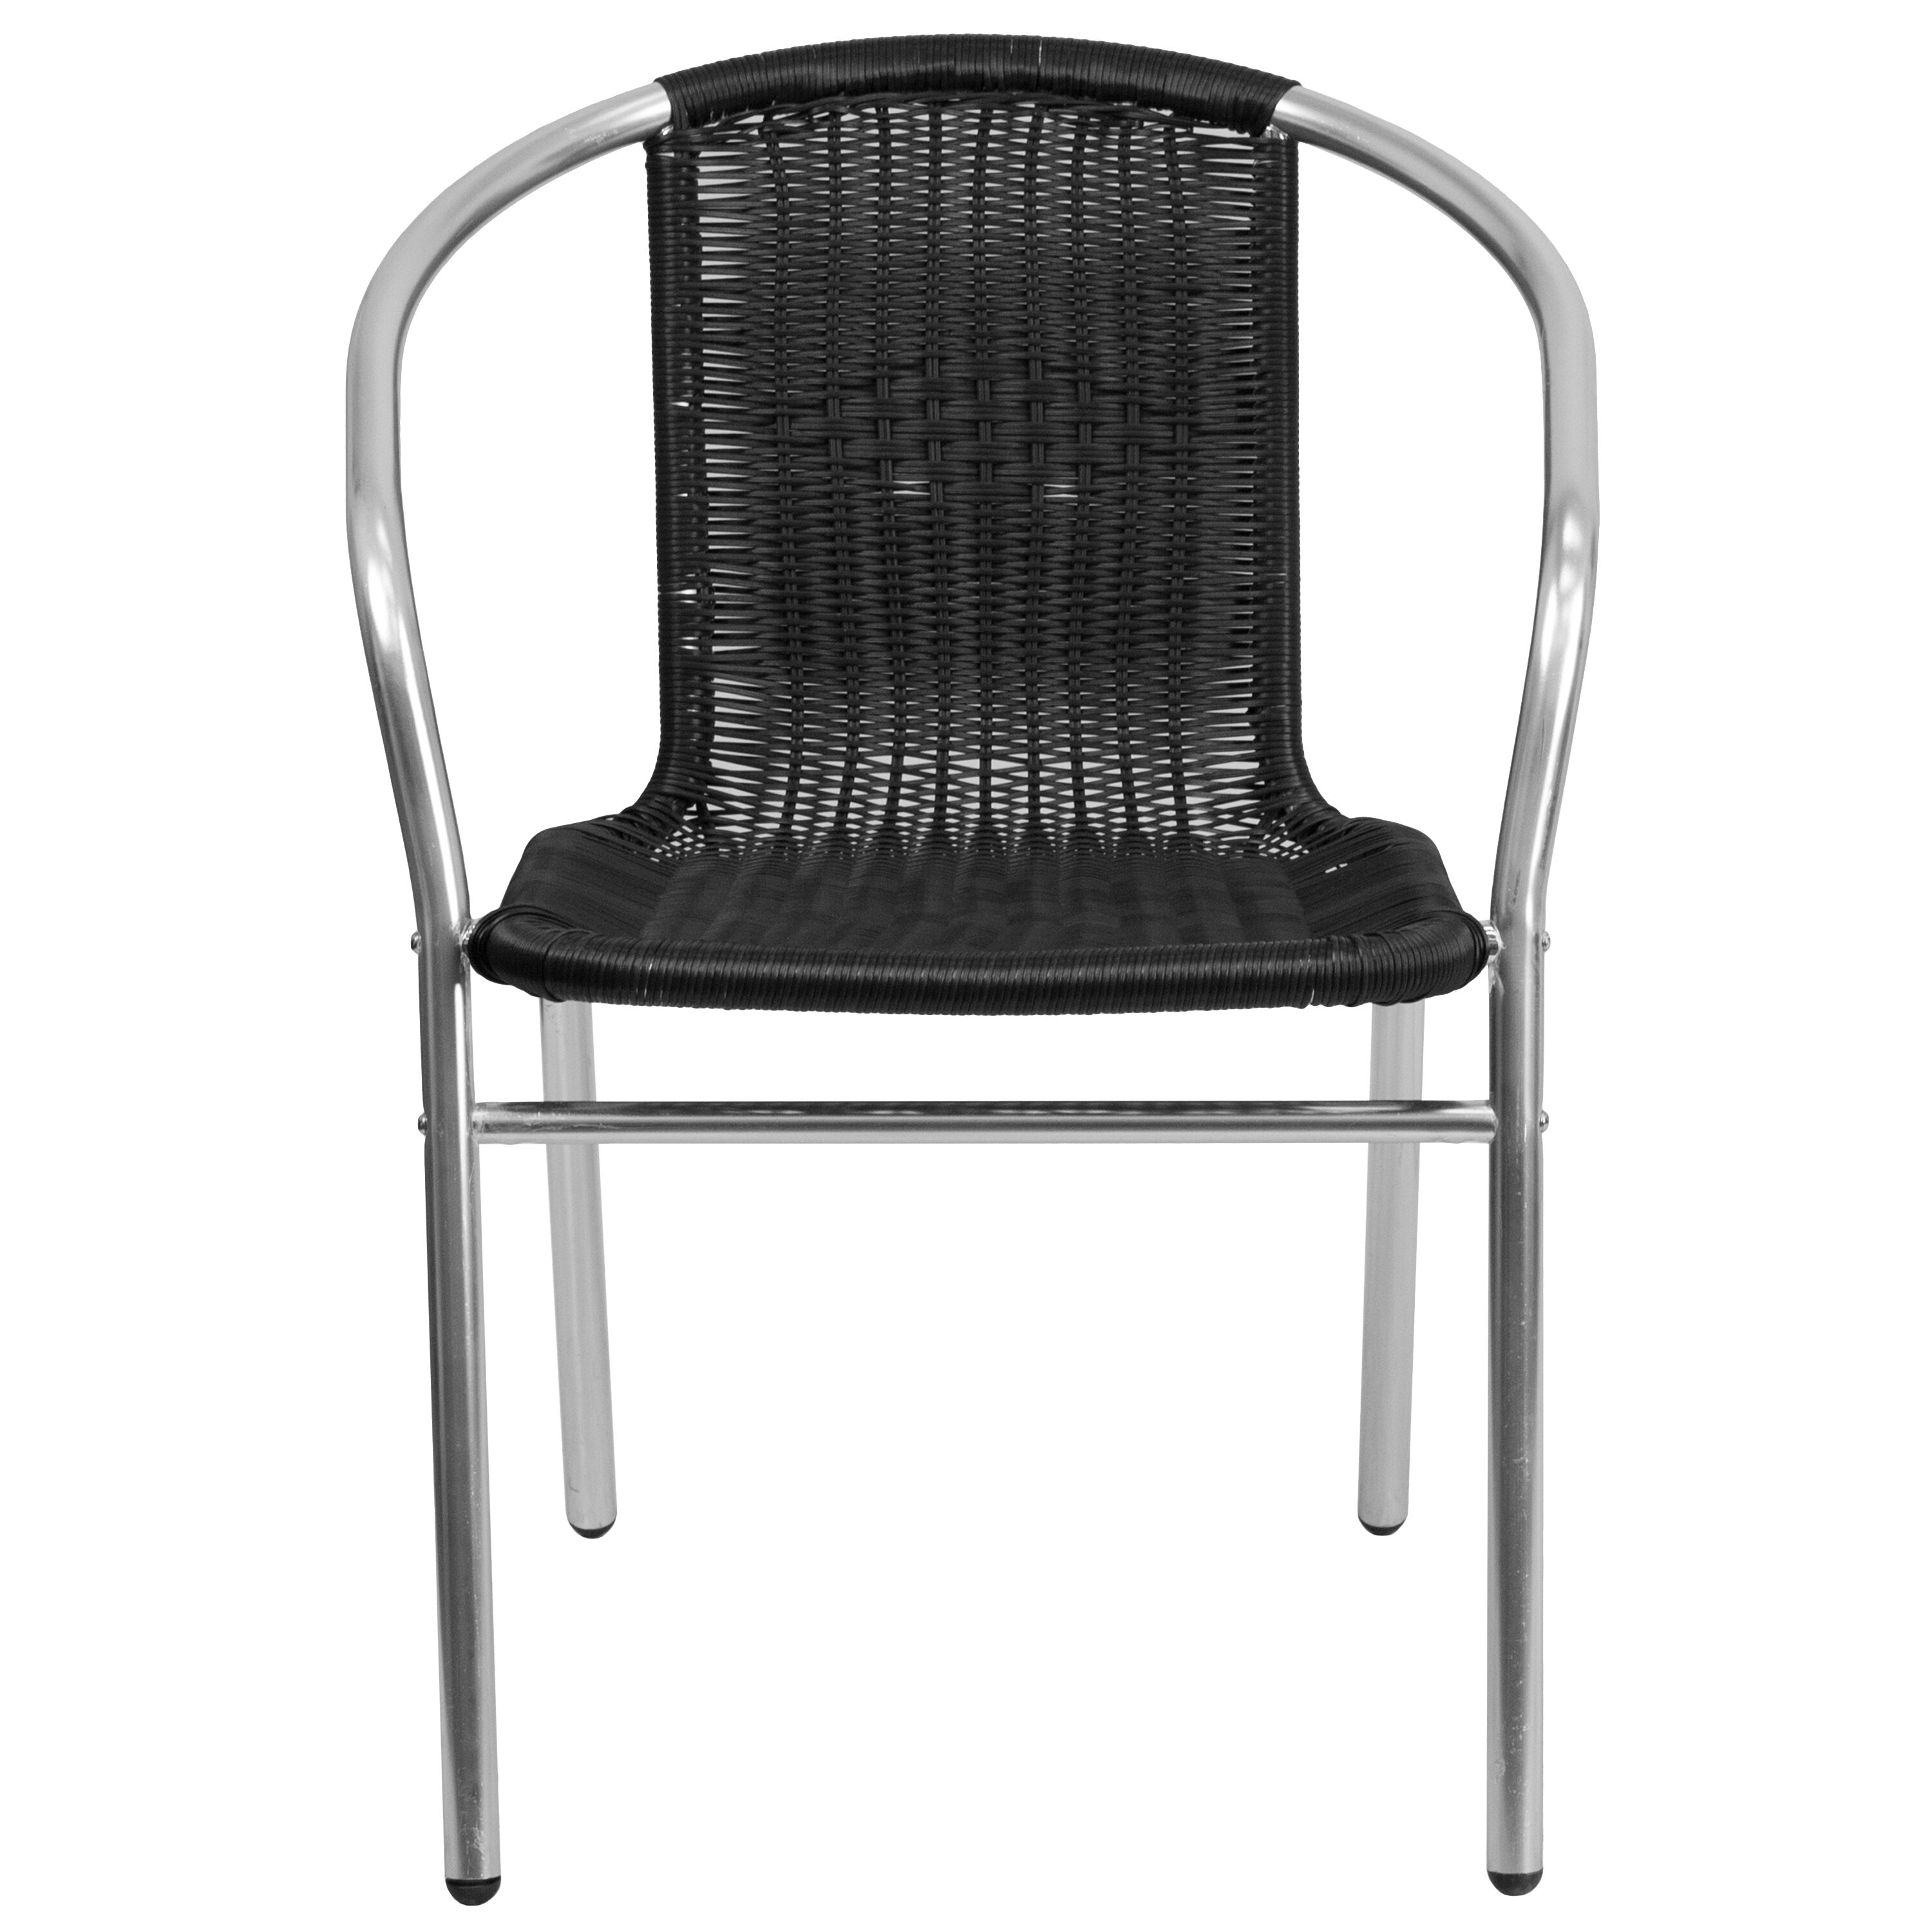 black rattan chair jumper chairs for babies aluminum tlh 020 bk gg stackchairs4less com our commercial and indoor outdoor restaurant stack is on sale now